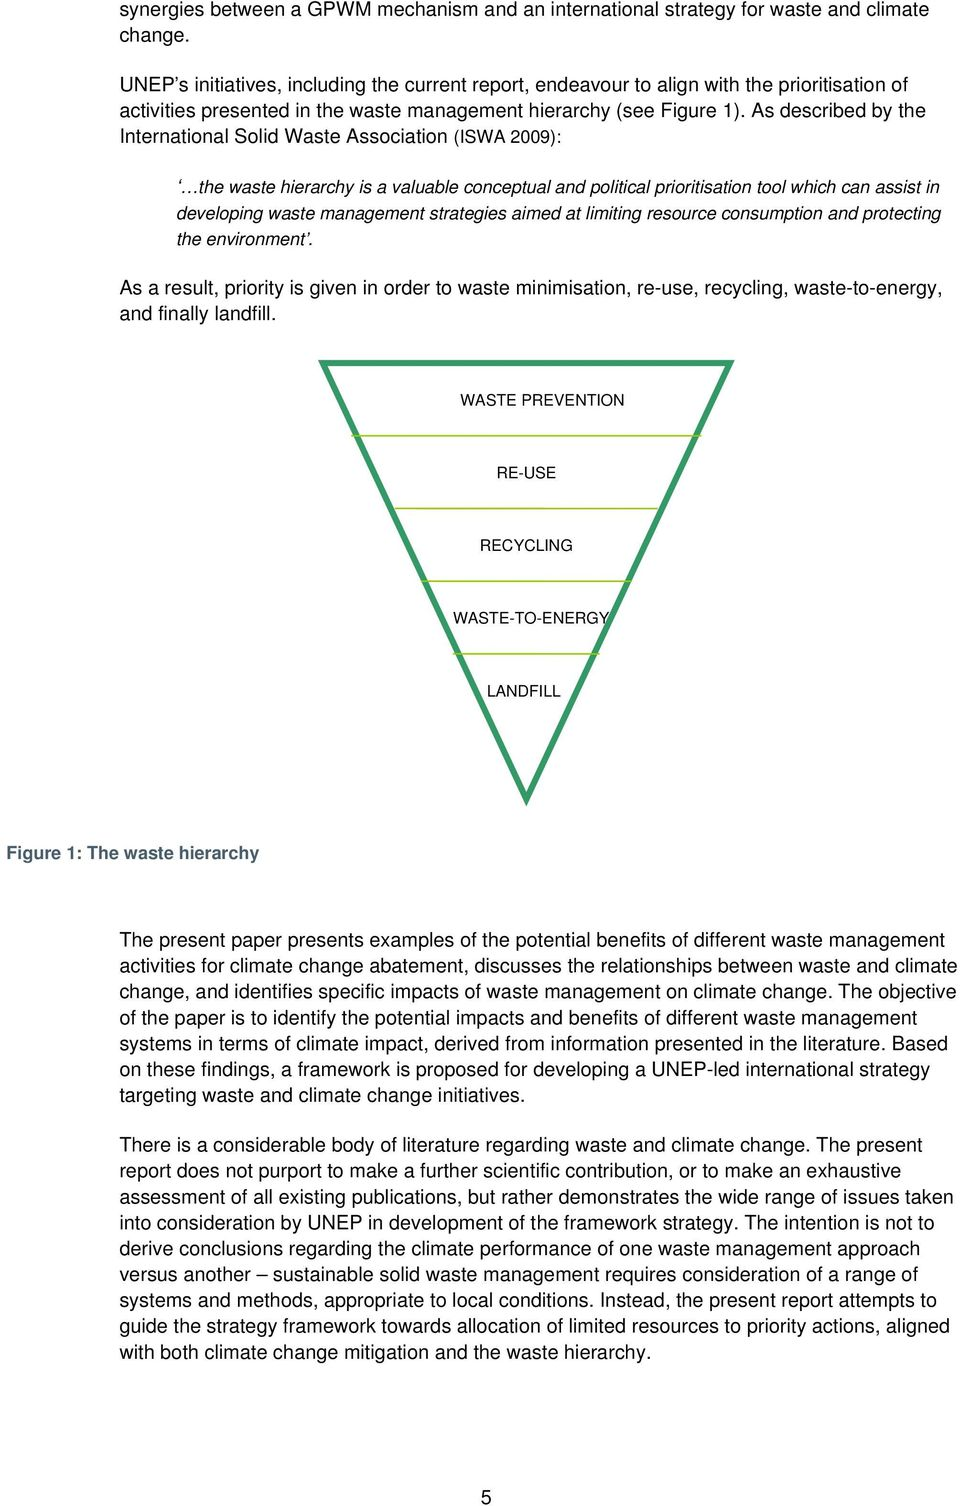 As described by the International Solid Waste Association (ISWA 2009): the waste hierarchy is a valuable conceptual and political prioritisation tool which can assist in developing waste management